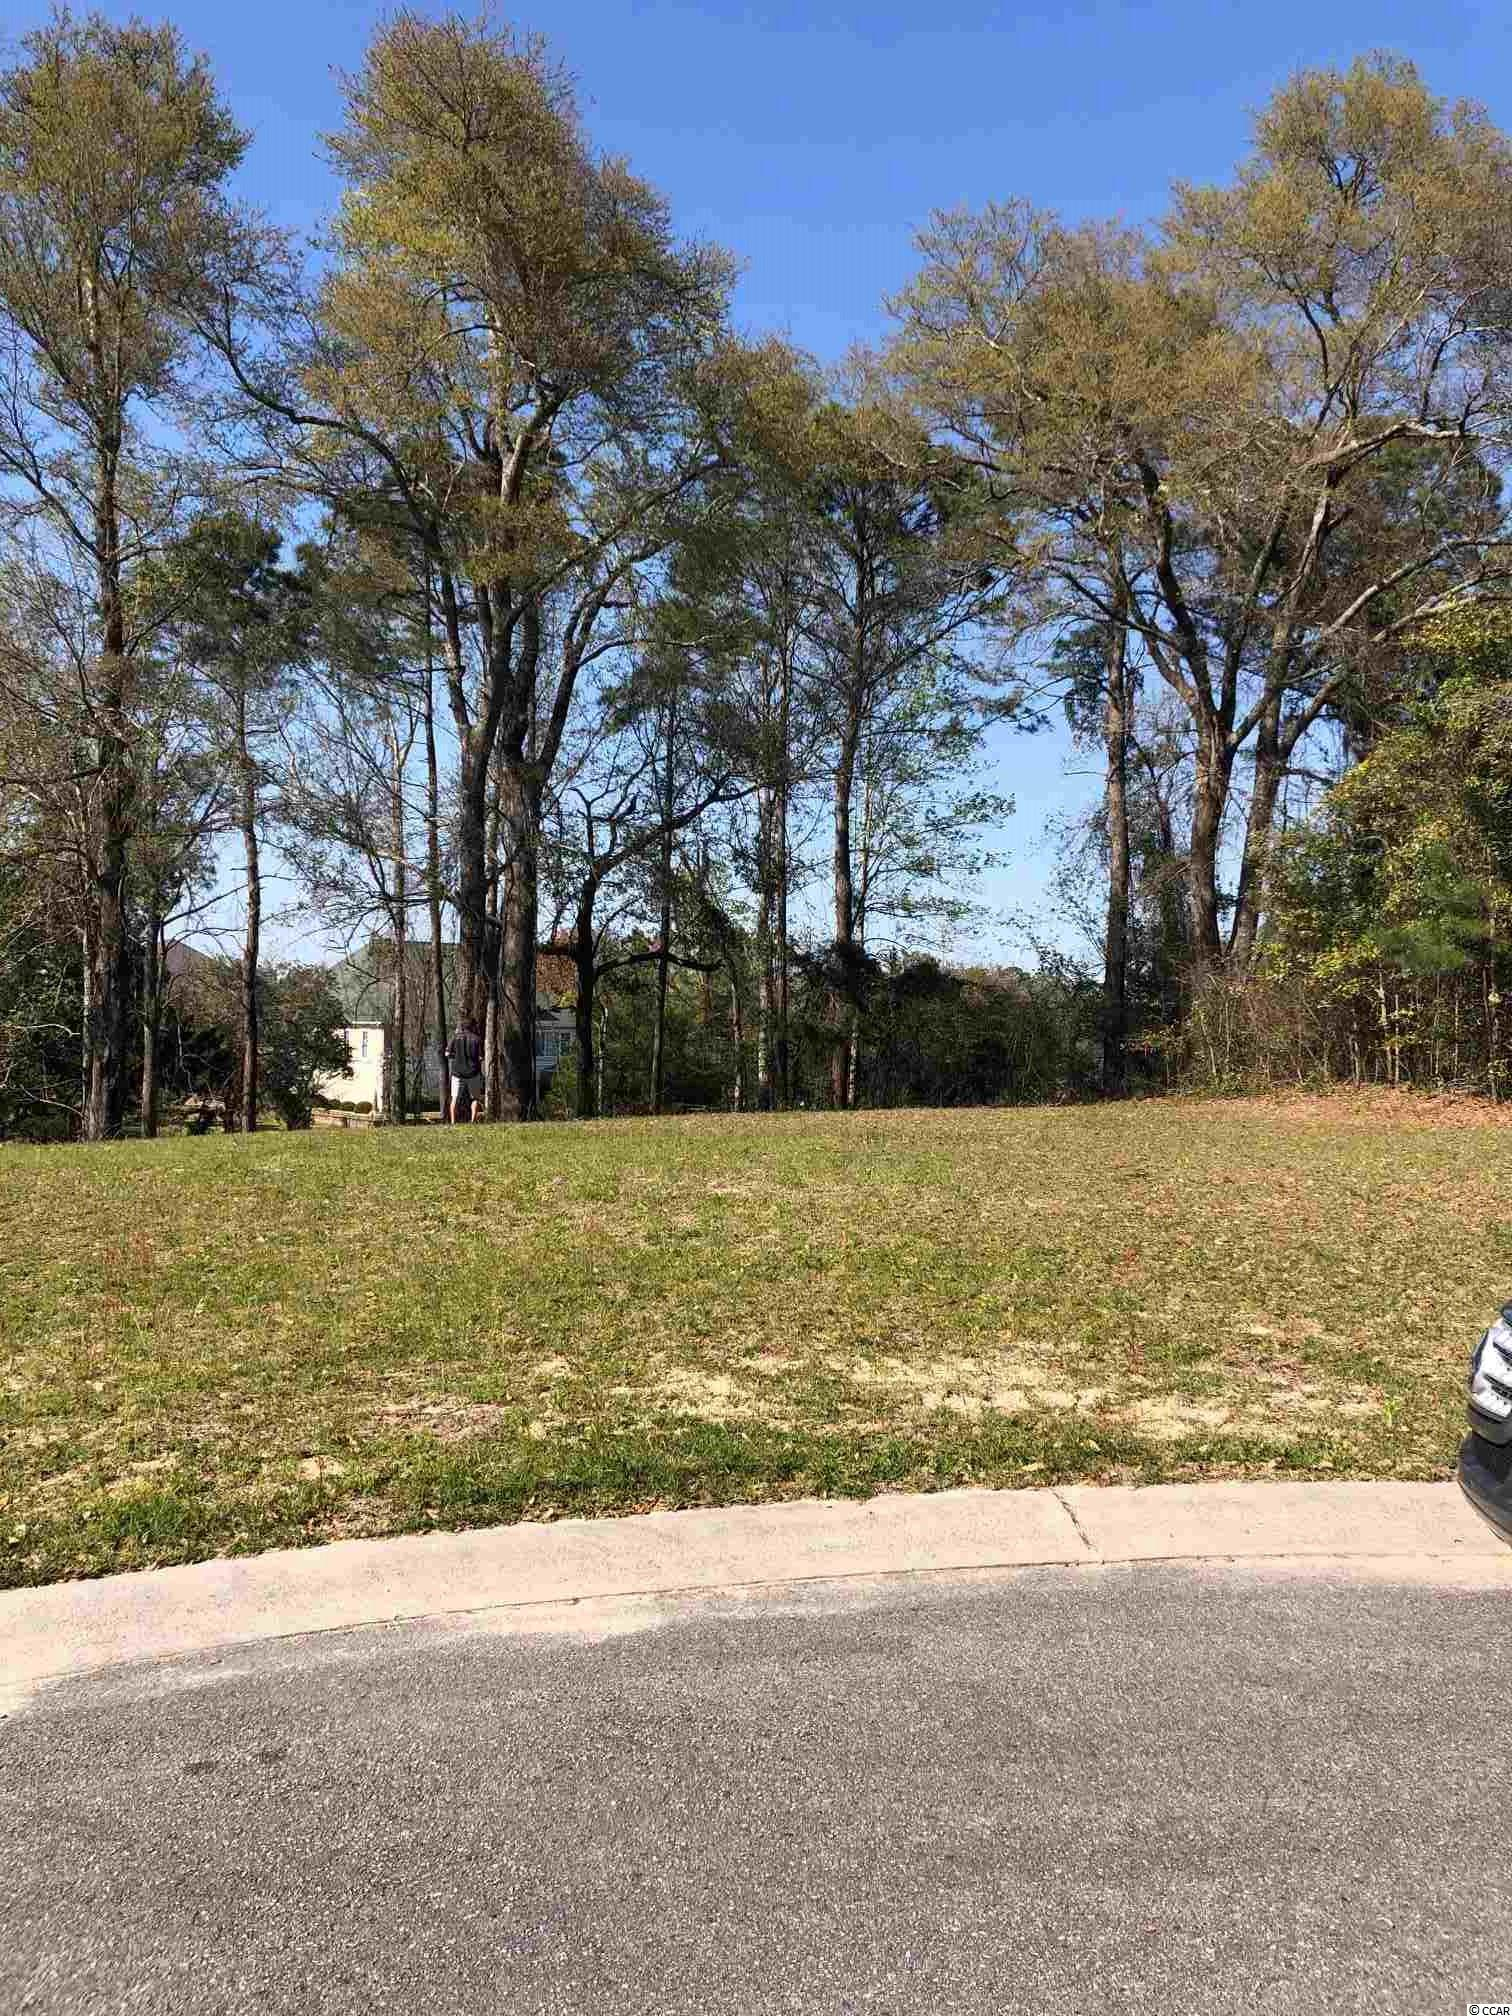 One of the highest points in NMB. Private Cul-de-sac lot on the lake, tucked away residential lot in a great neighborhood east of 17 in North Myrtle Beach. This wooded lot is a good size (.44ACRE) with a pond view, close to the beach, waterway and all of the area amenities. Golf cart distance to the beach. When you build your house, you may be able to see the intercoastal waterway from the first raise floor.